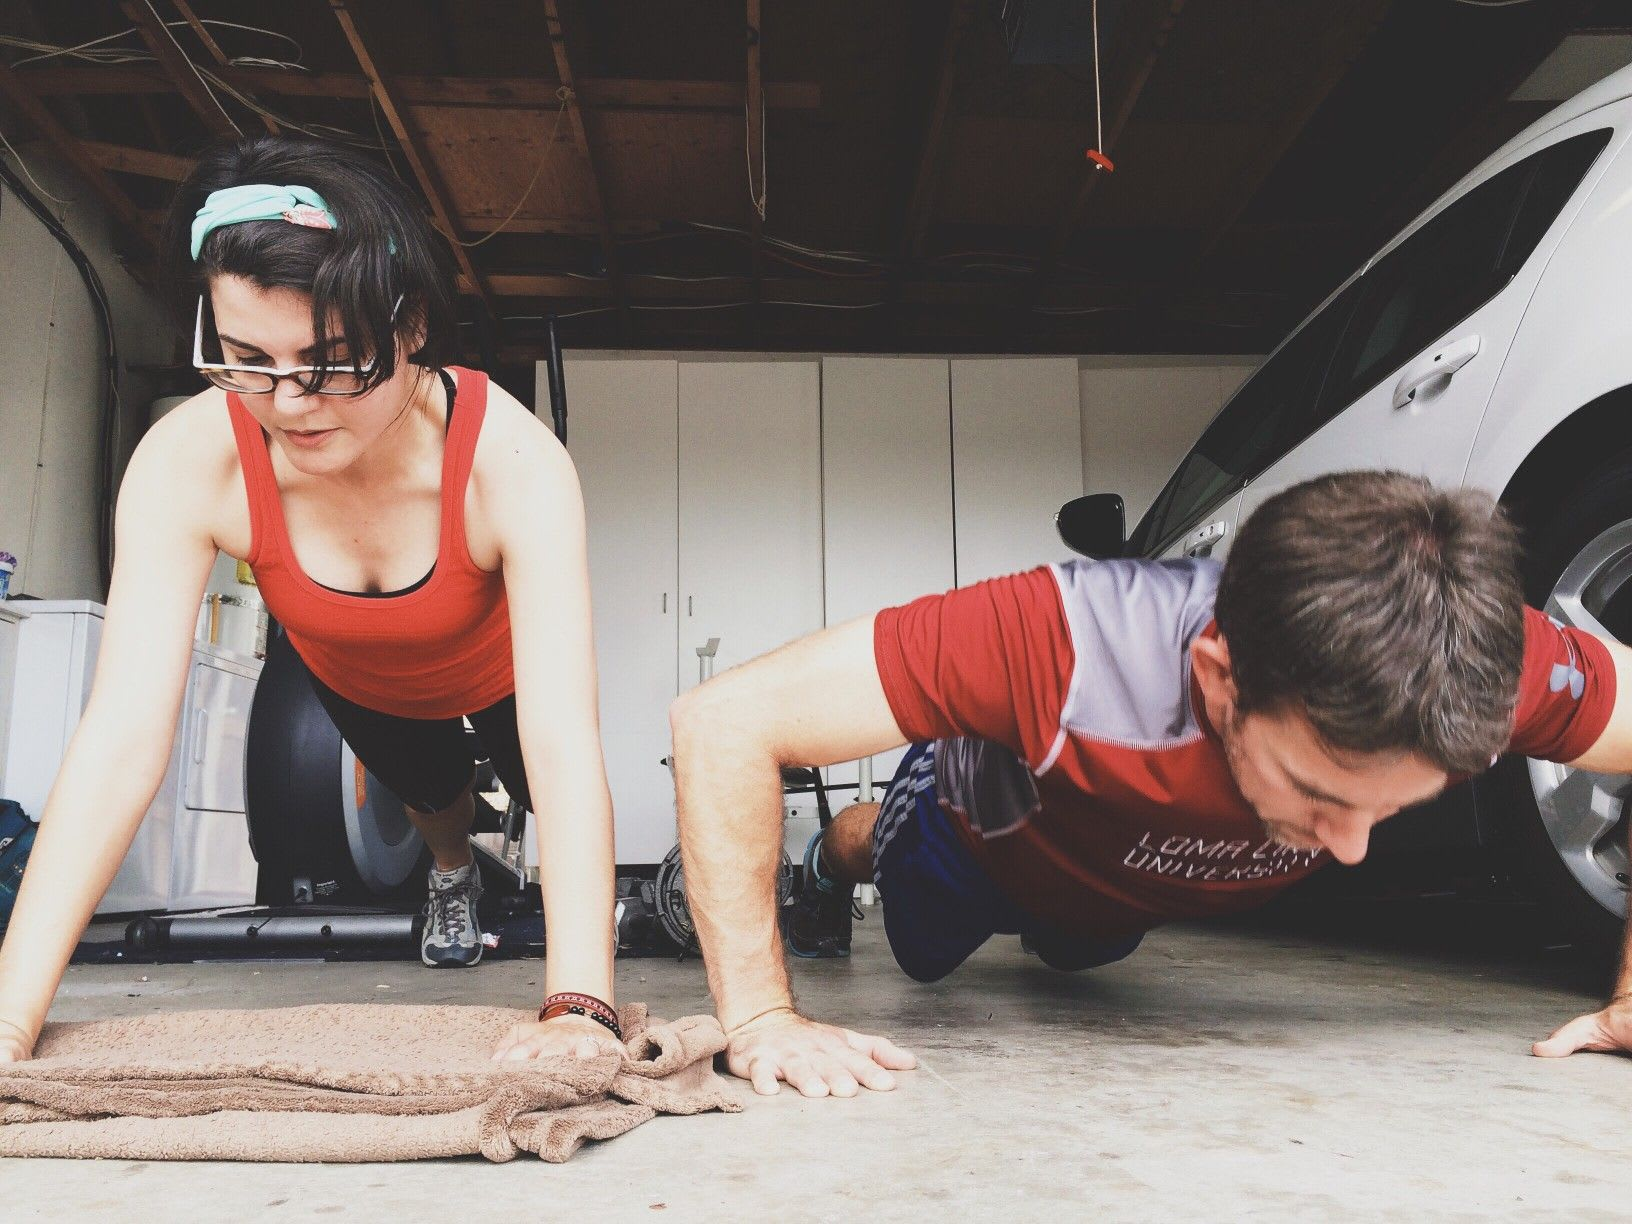 How To Get In A Quiet, Effective Workout At Home